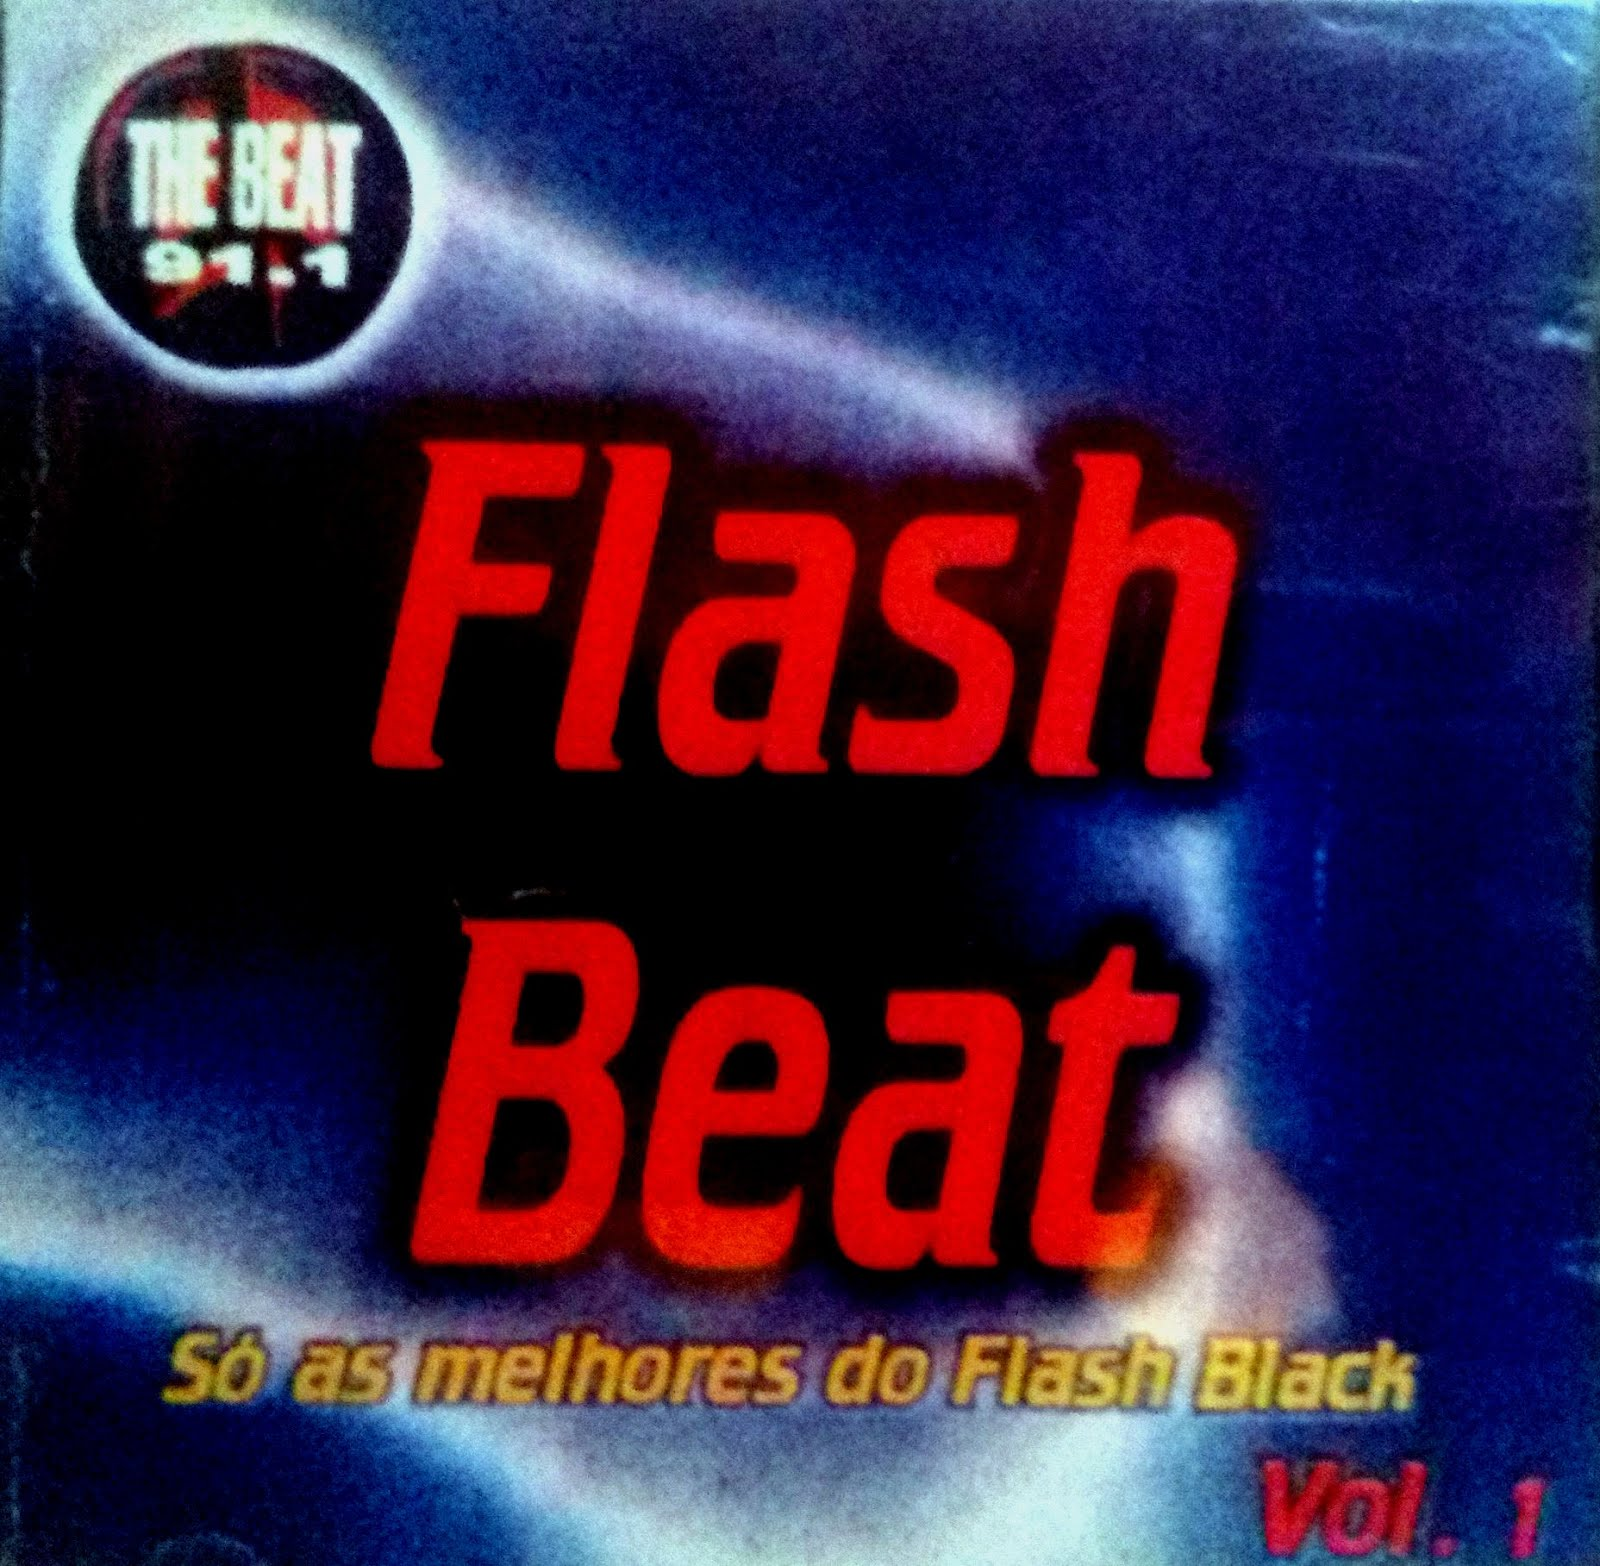 FLASH BEAT VOL 1